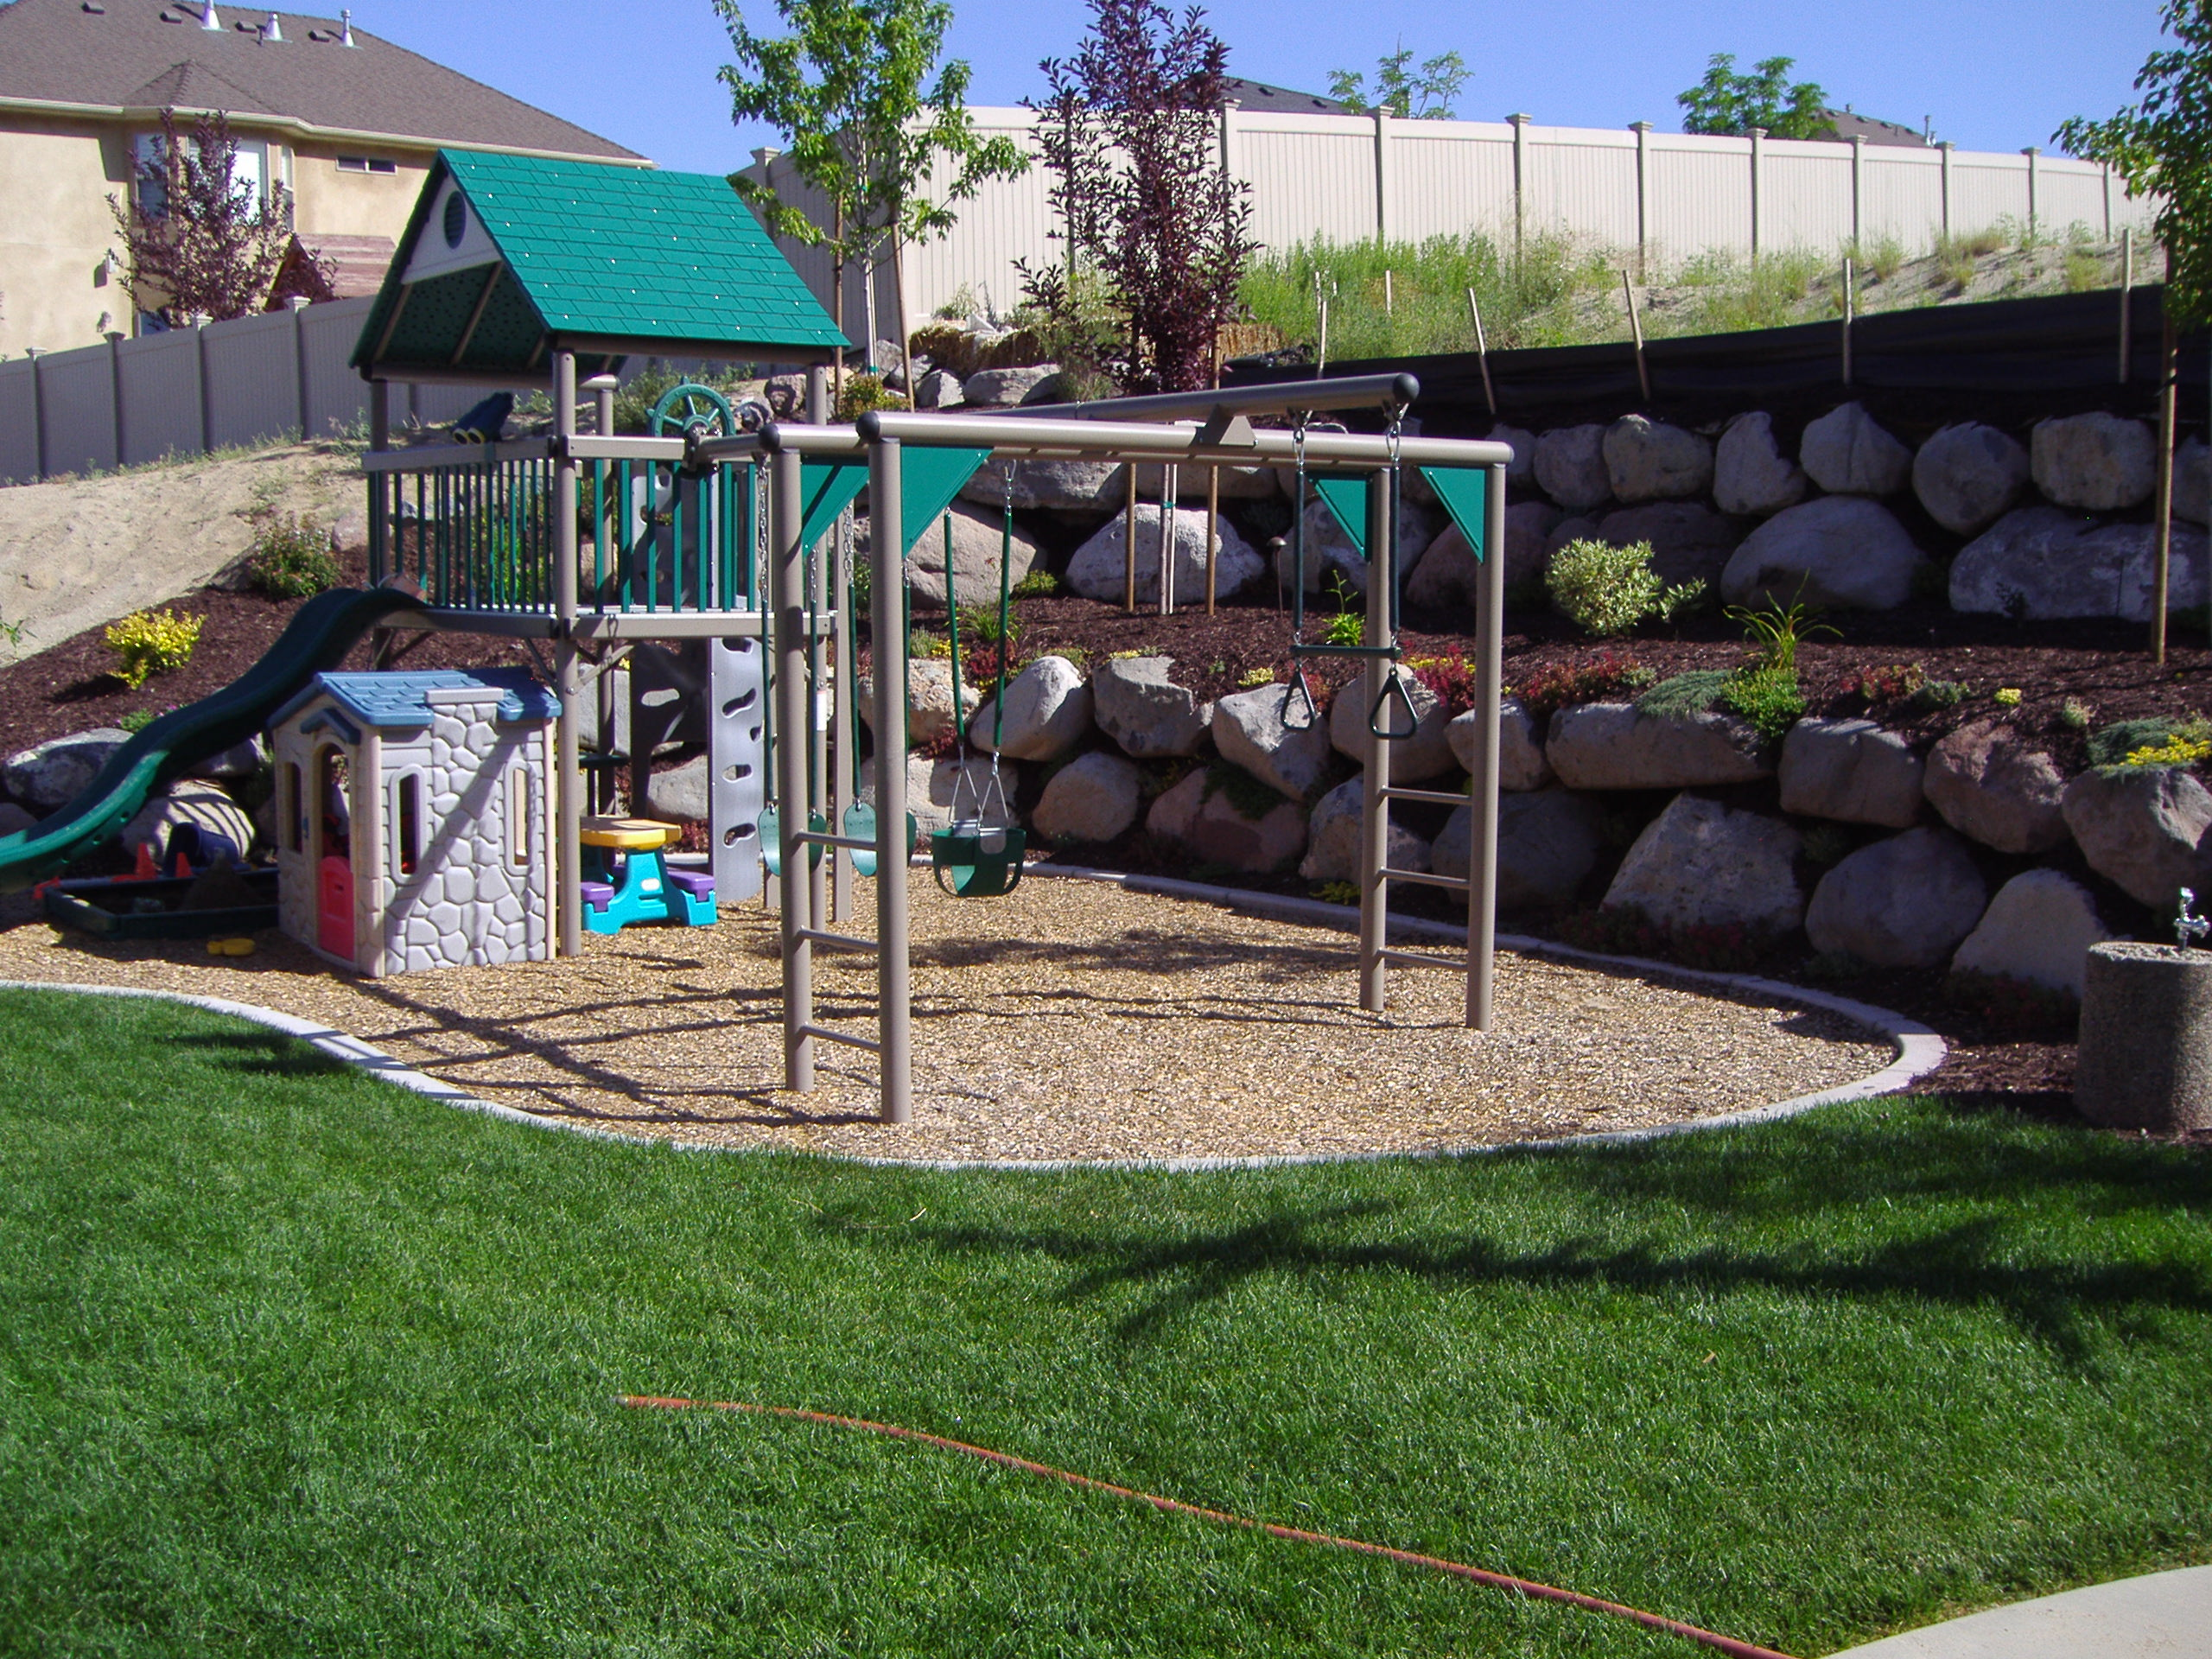 Family Friendly Backyard Ideas : Kid friendly play areas with water features, Putting greens and design